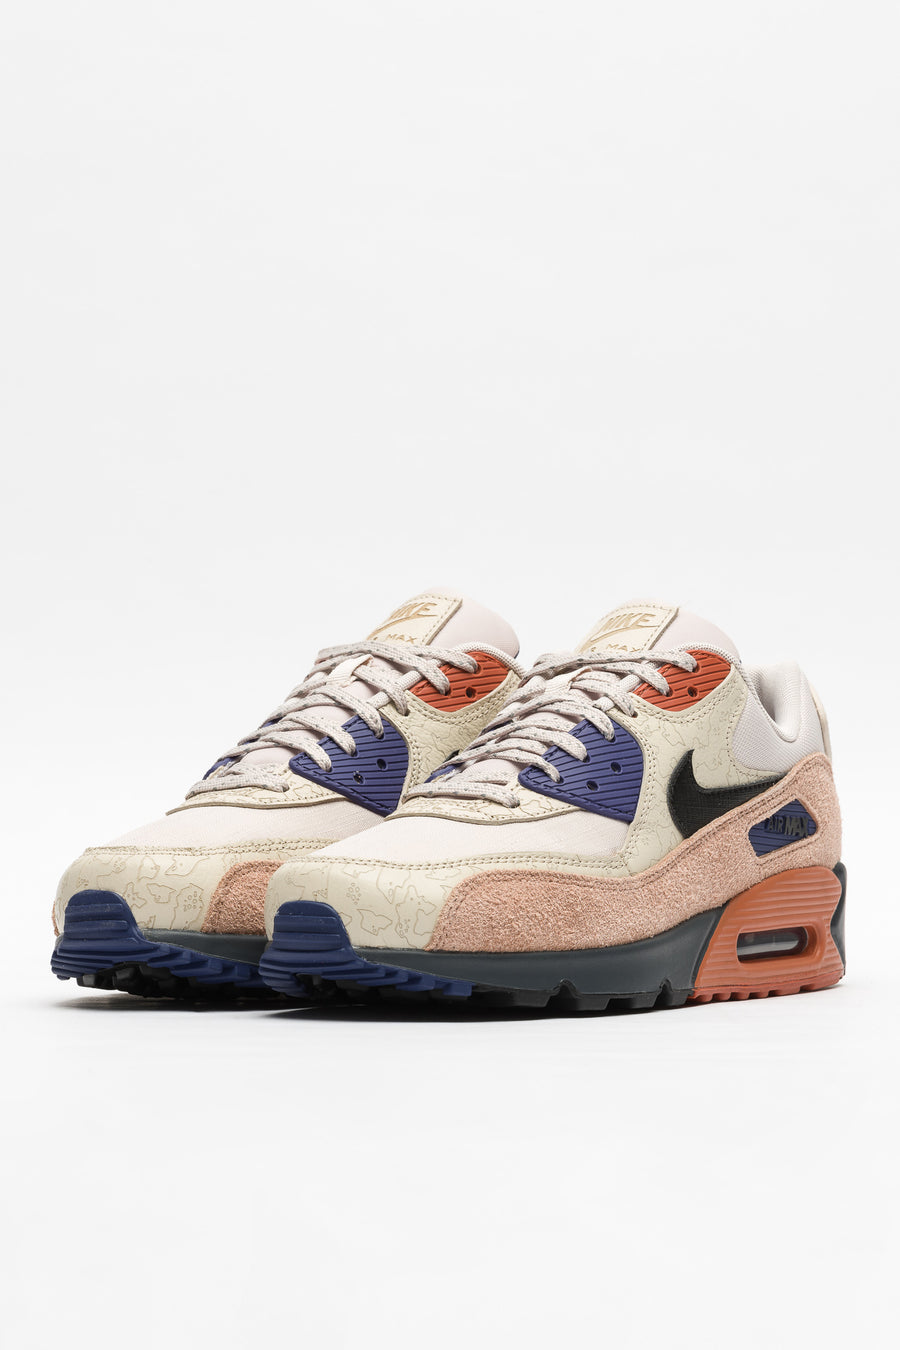 Nike Air Max 90 NRG in Desert Sand/Black/Rust - Notre